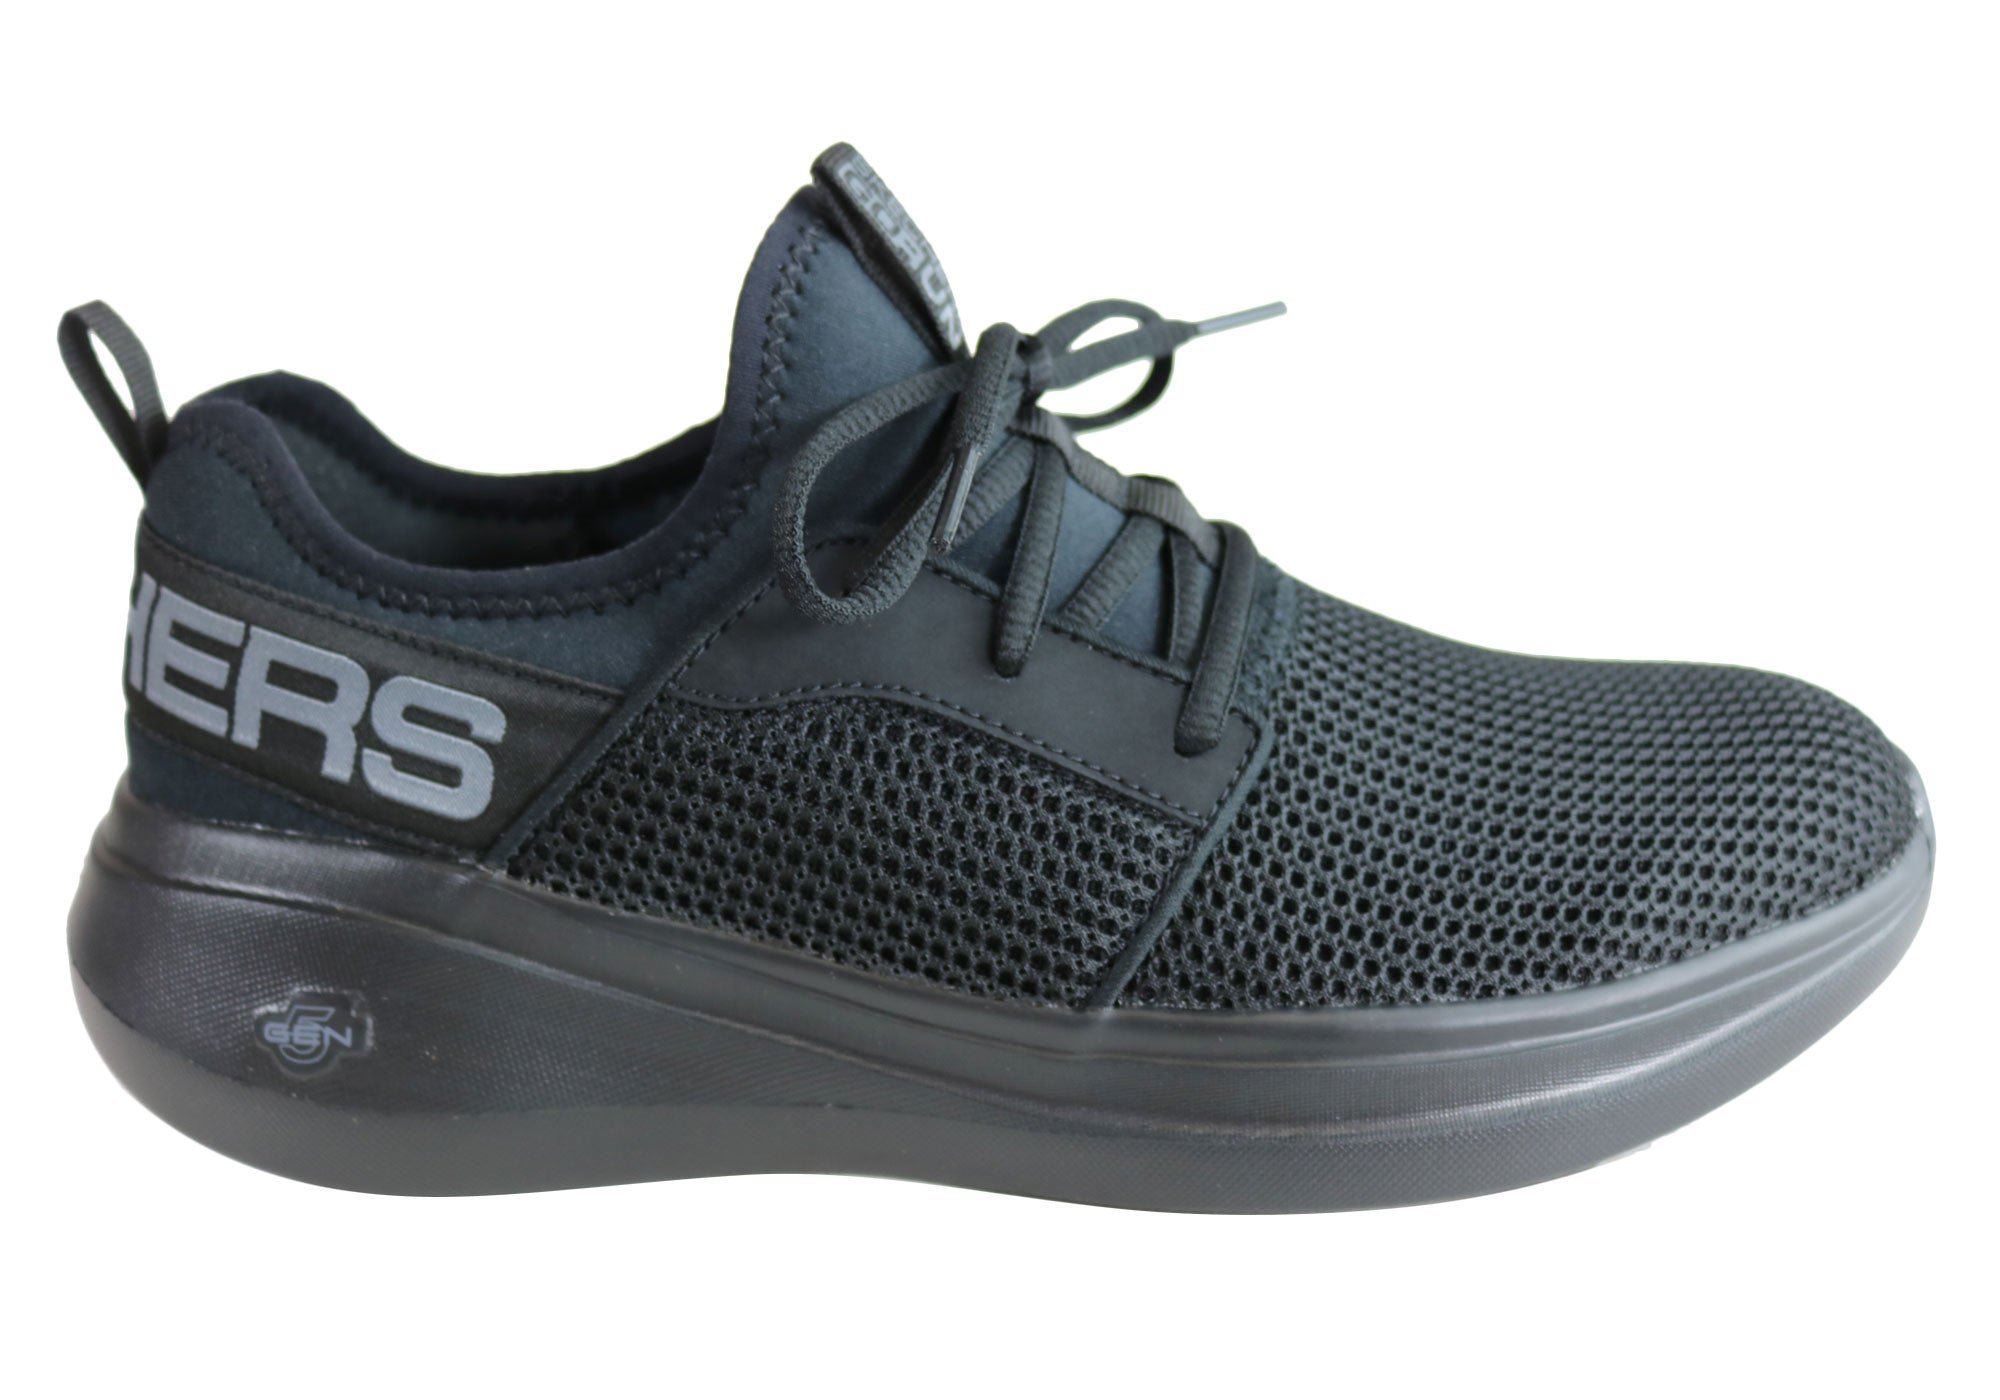 504d1623d250 Home Skechers Womens Go Run Fast Valor Lightweight Cushioned Athletic  Shoes. Black ...